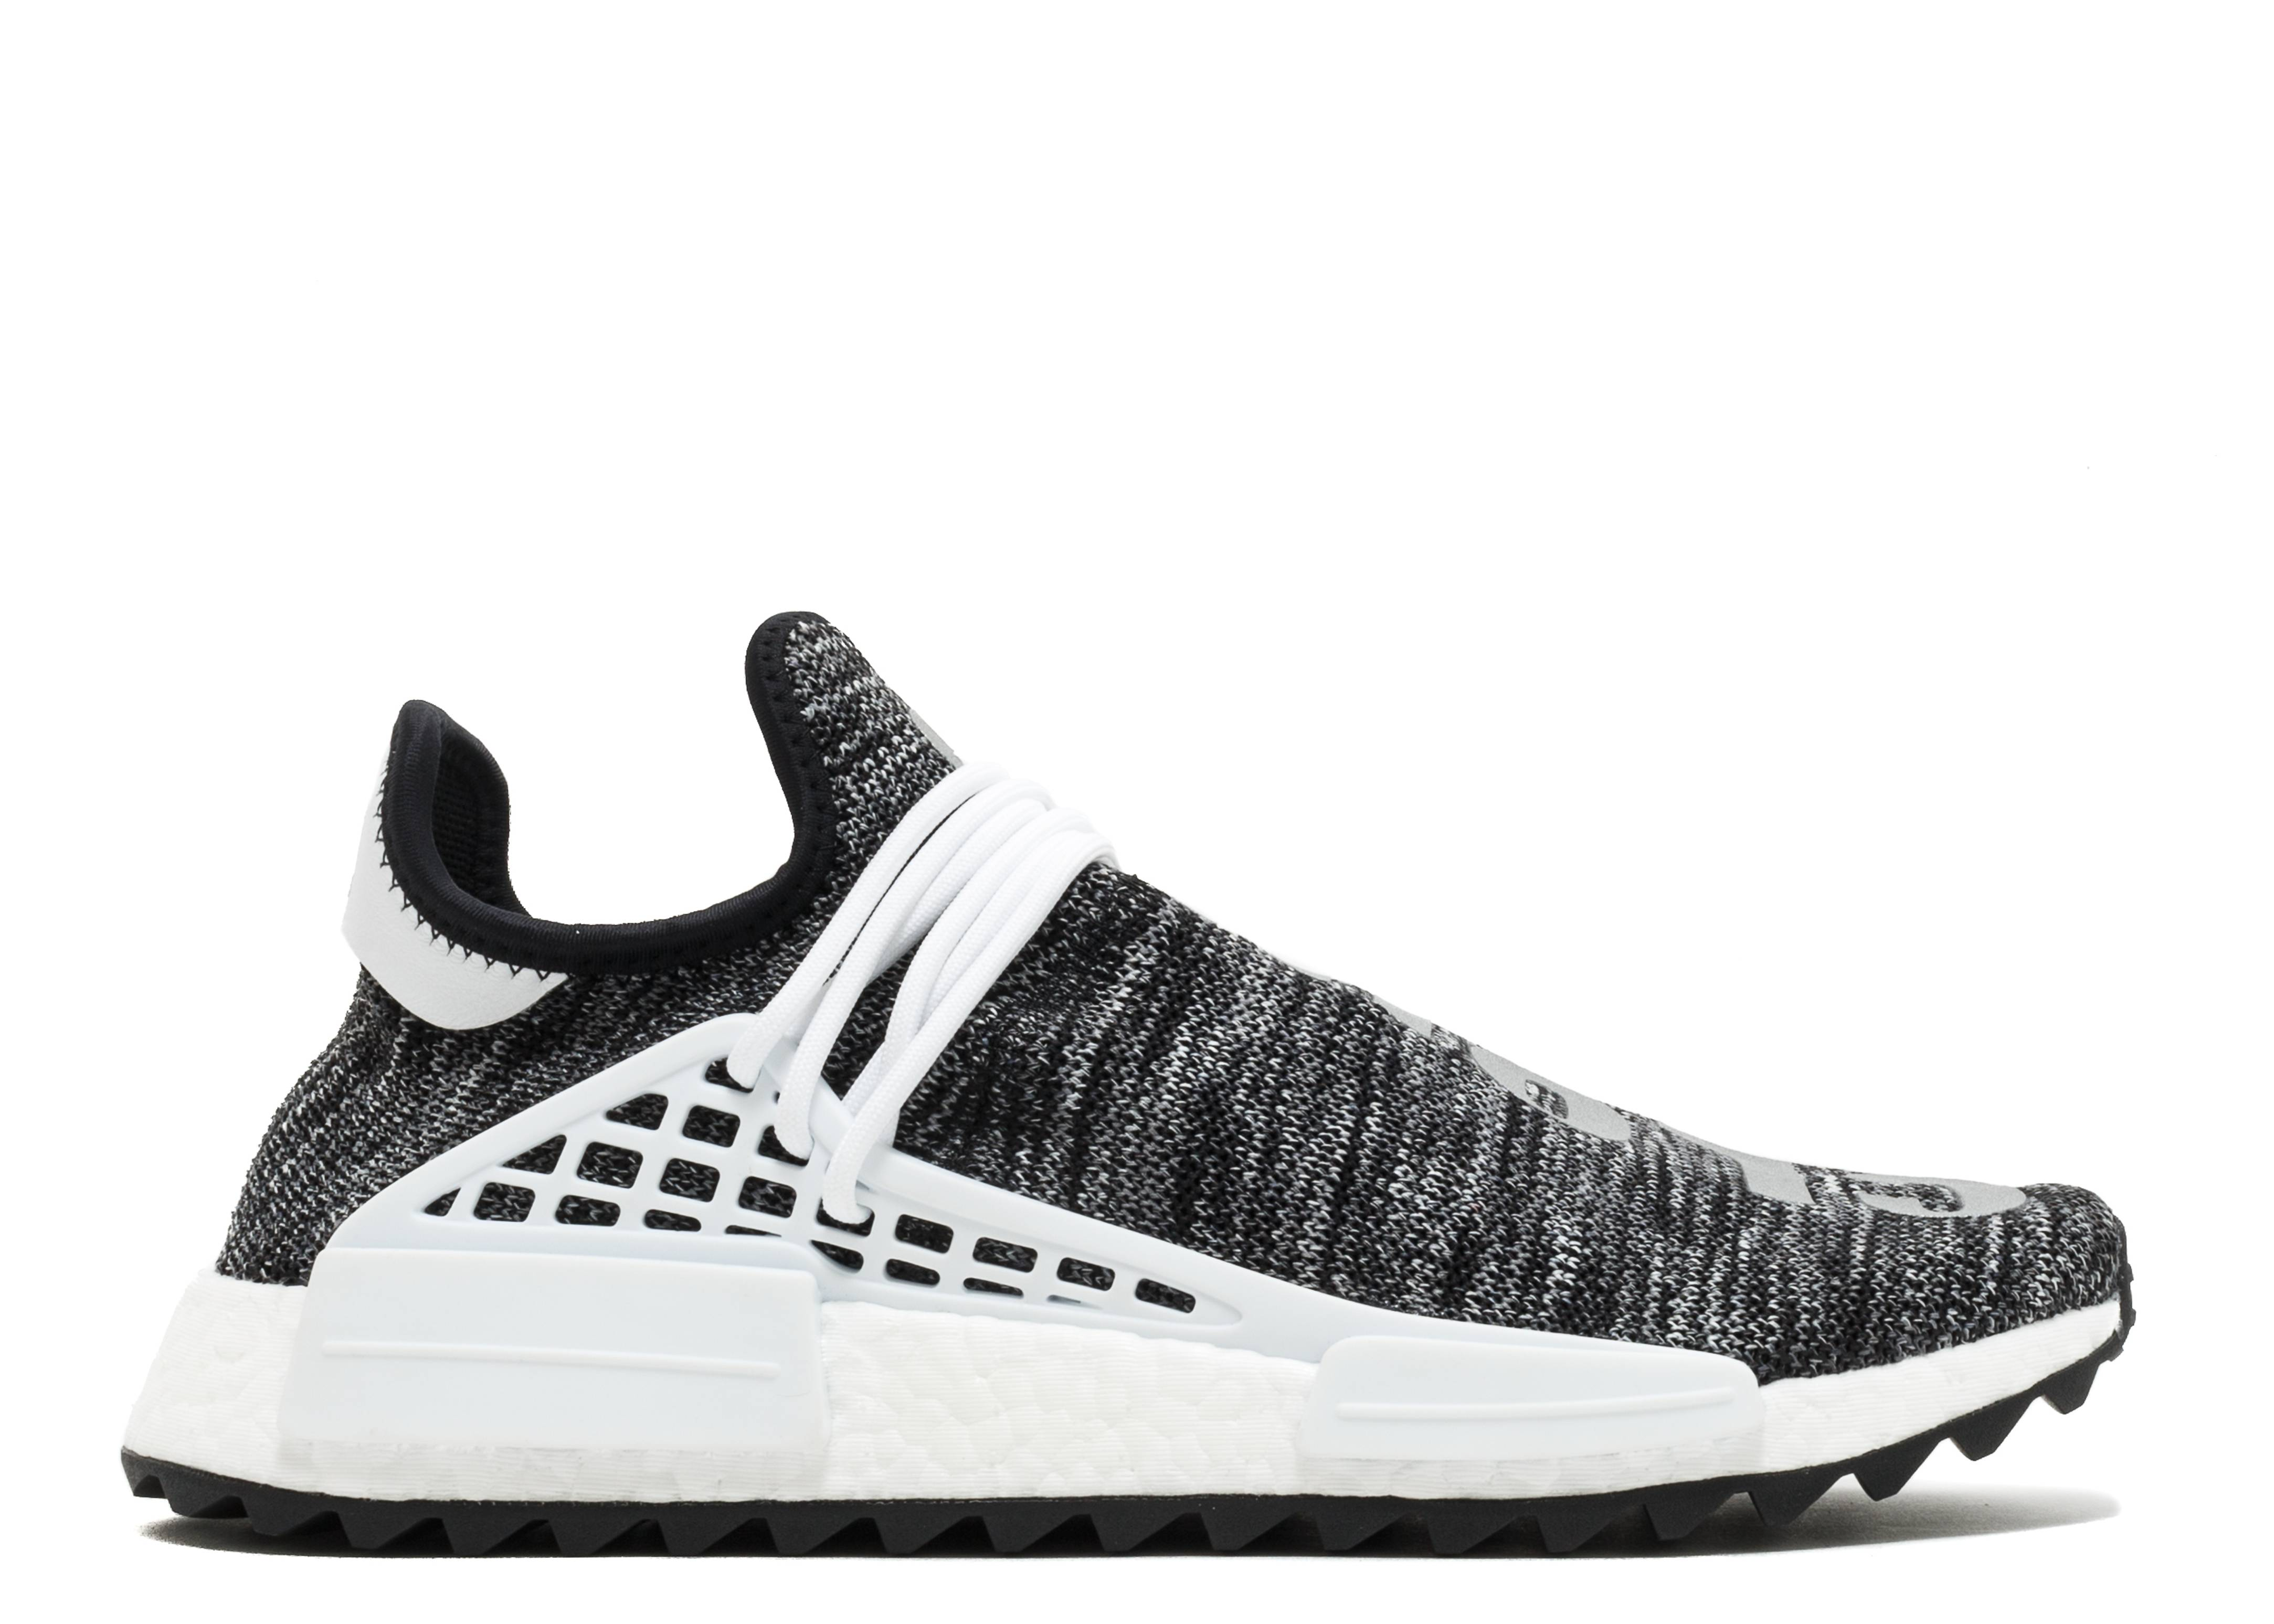 Pharrell Williams x adidas NMD Hu Trail 'Core Black' | EG7836